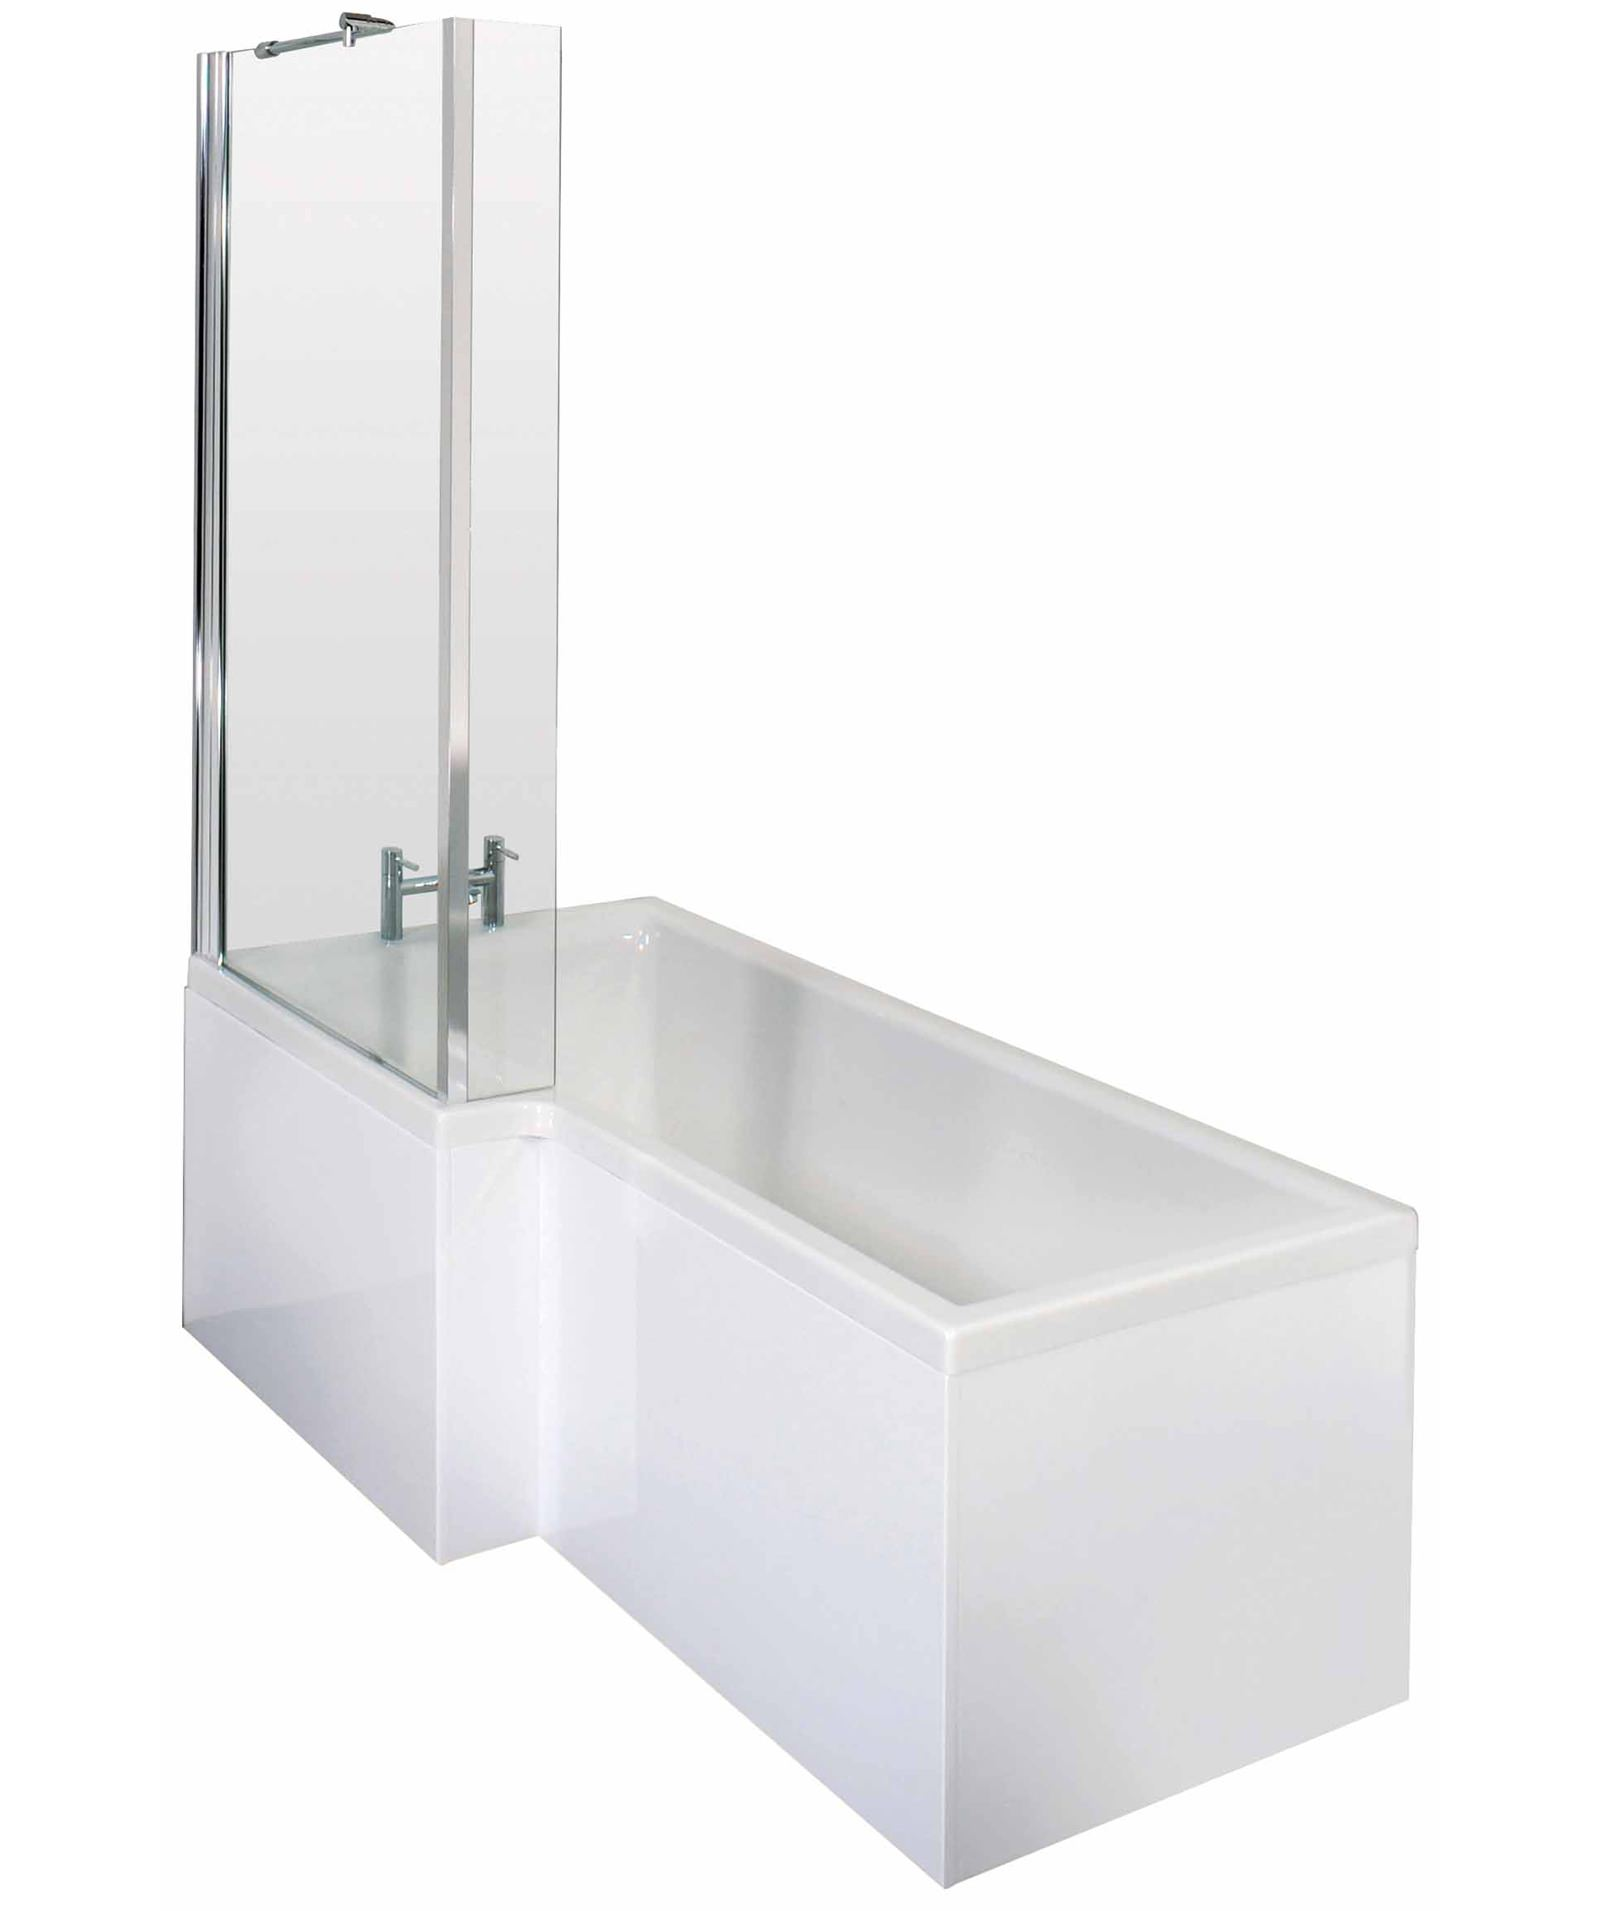 Premier Square 1700 X 850mm Left Hand Acrylic Shower Bath